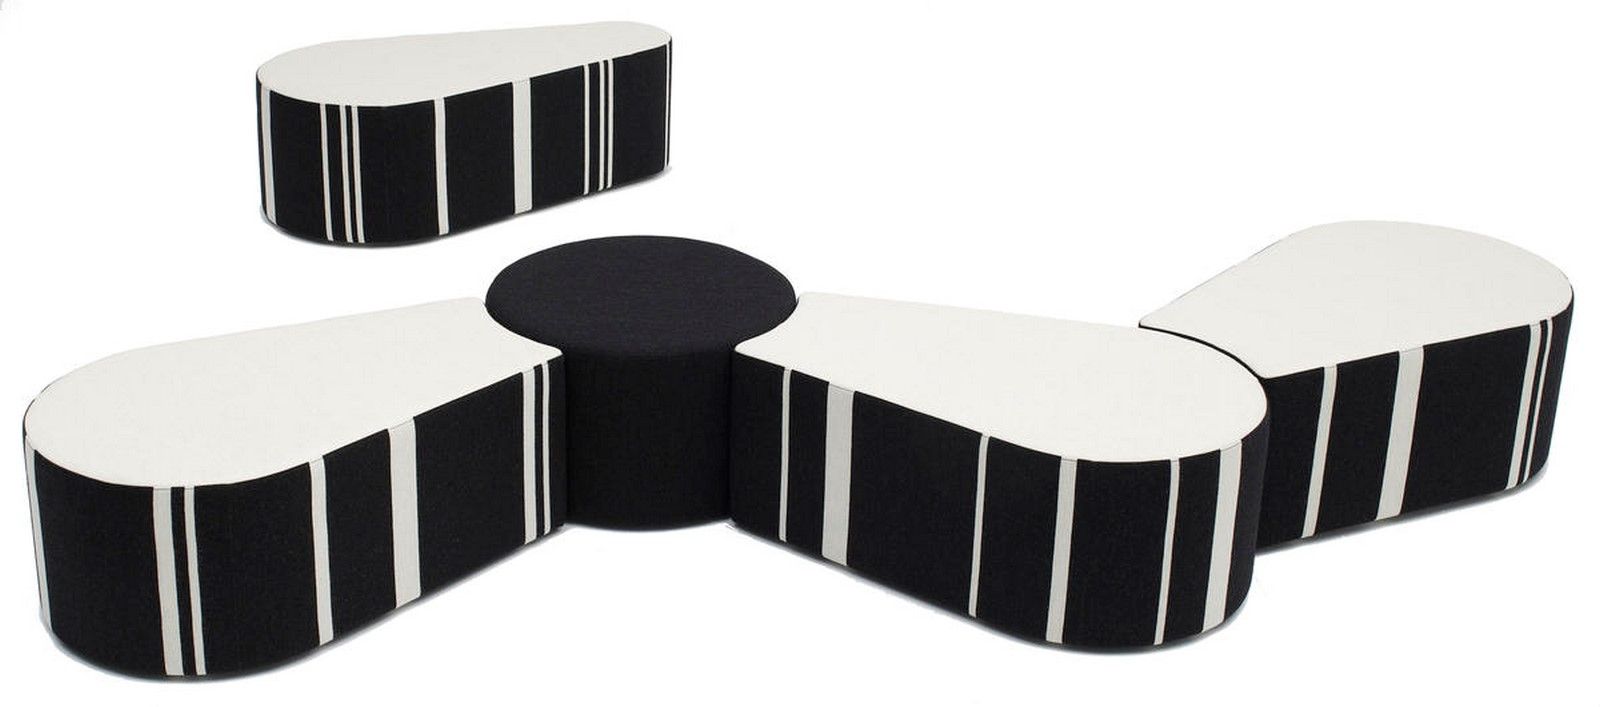 BLOOM additive seating-system- Sheet1